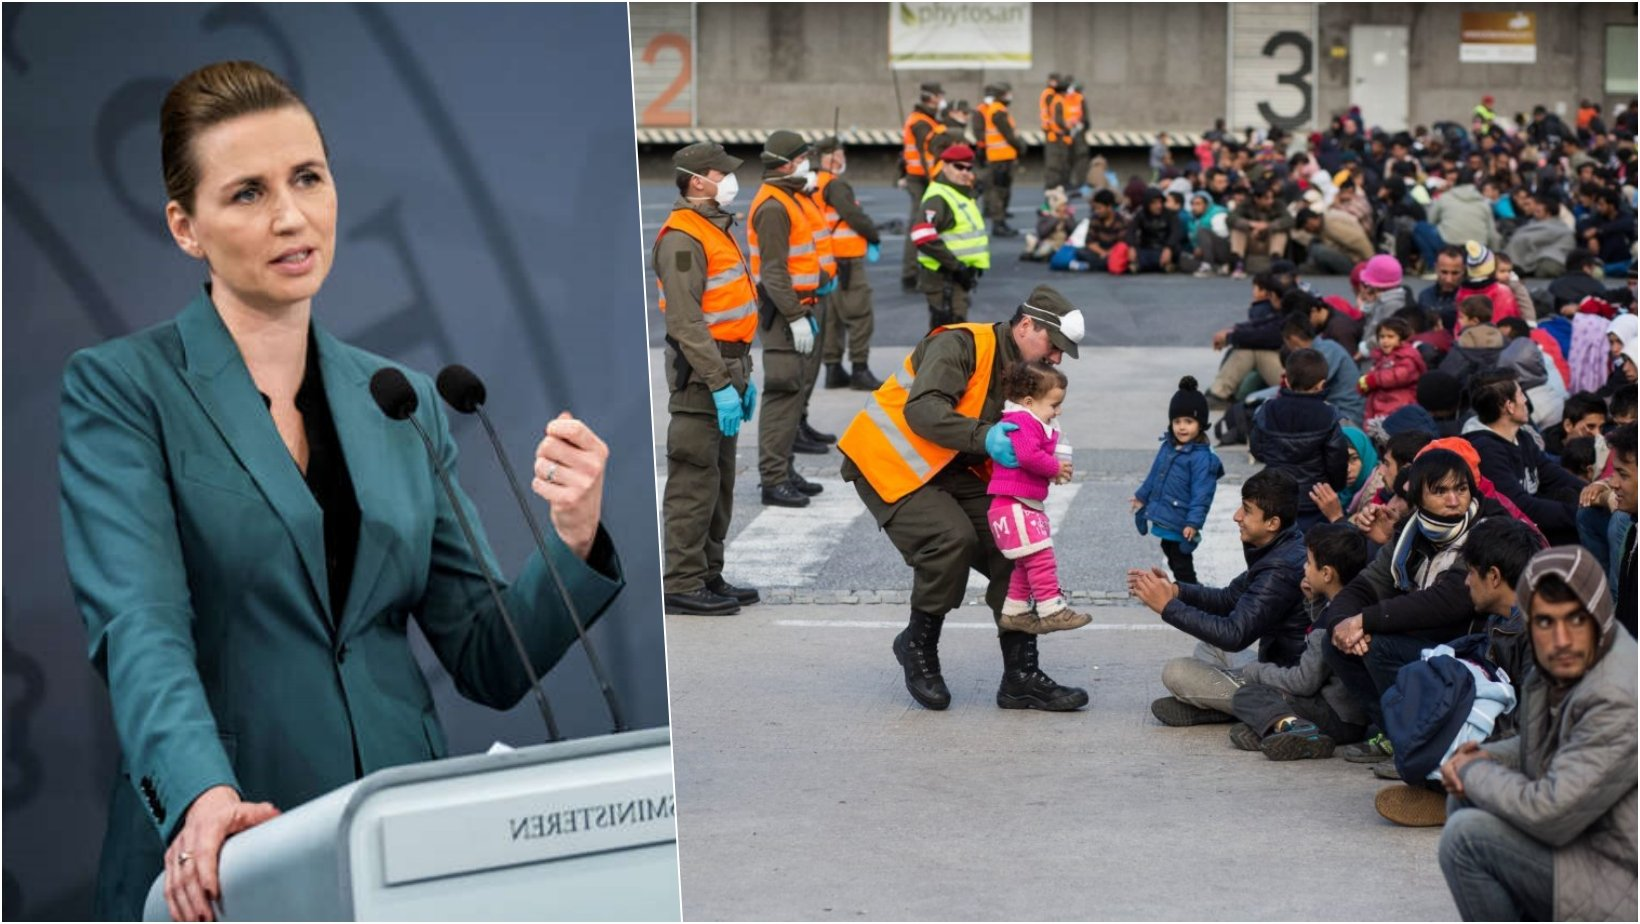 6 facebook cover 11.jpg?resize=1200,630 - Denmark Plans To Make Migrants Work To Earn Welfare Benefits Because 'There Are Too Many Who Do Not Have A Job'